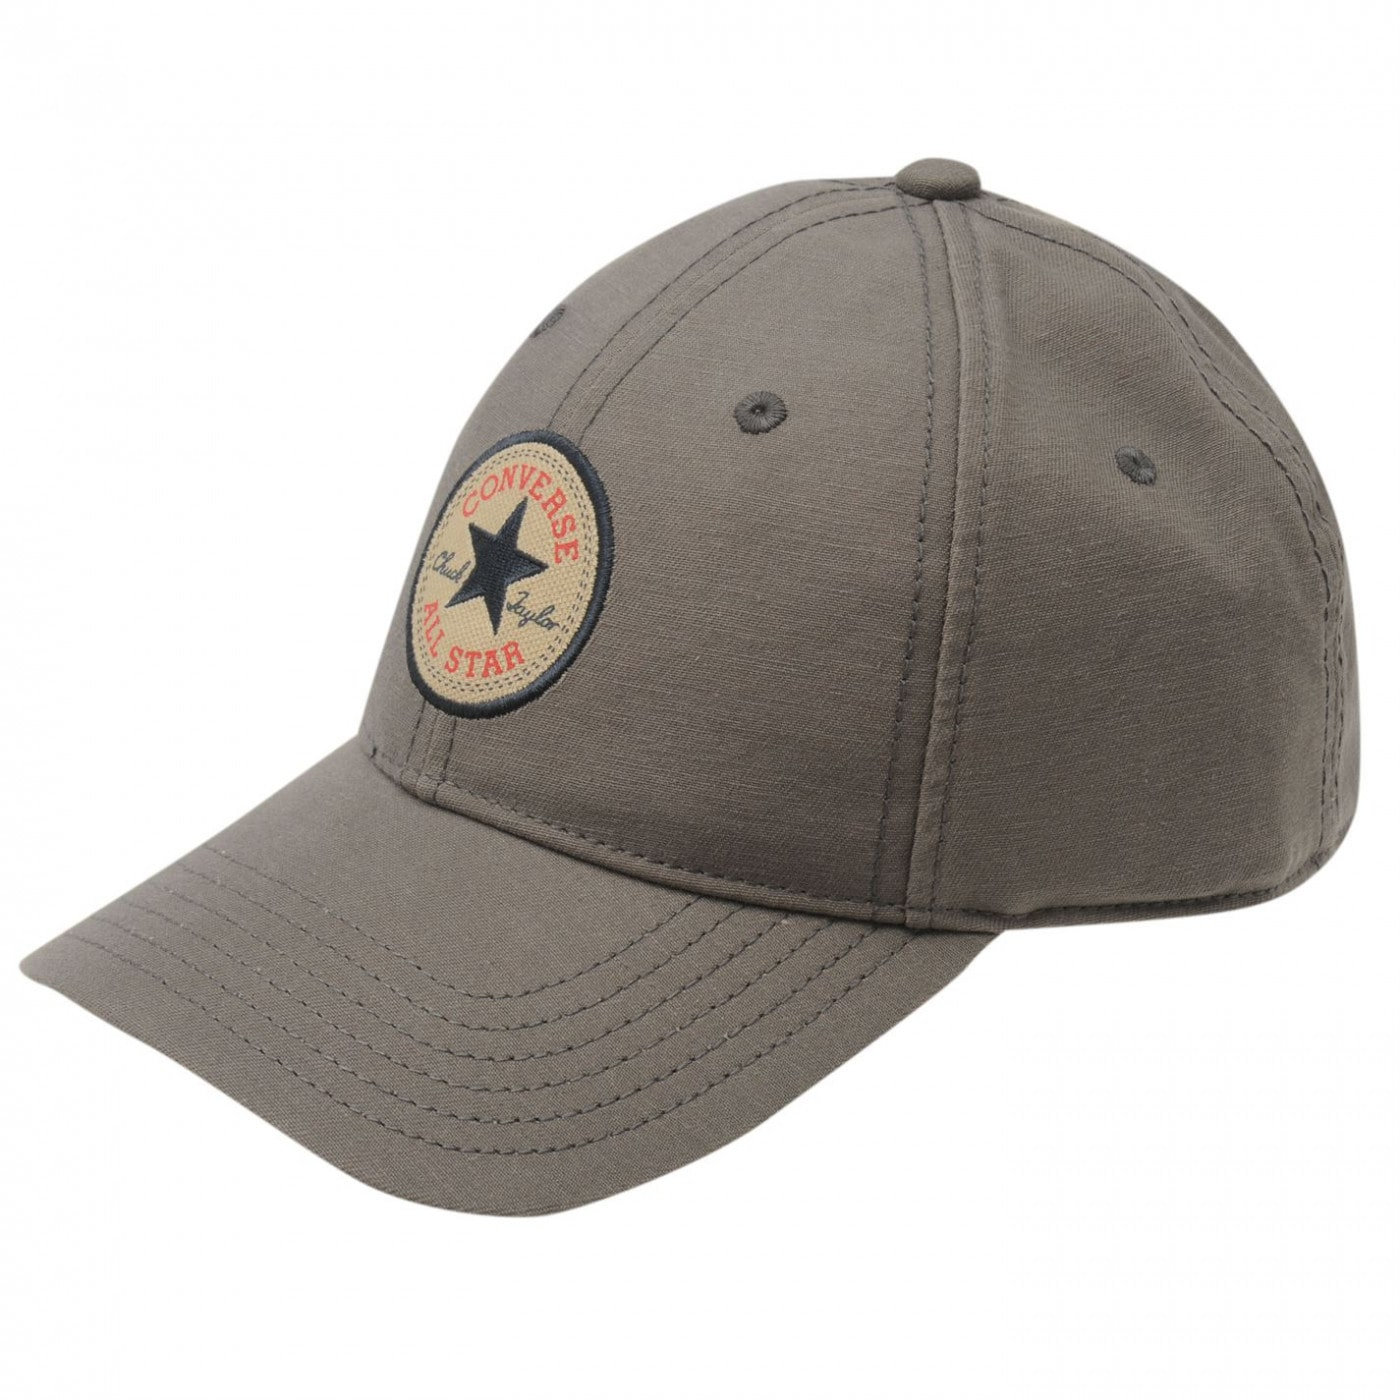 Converse Tip Off Patch Cap